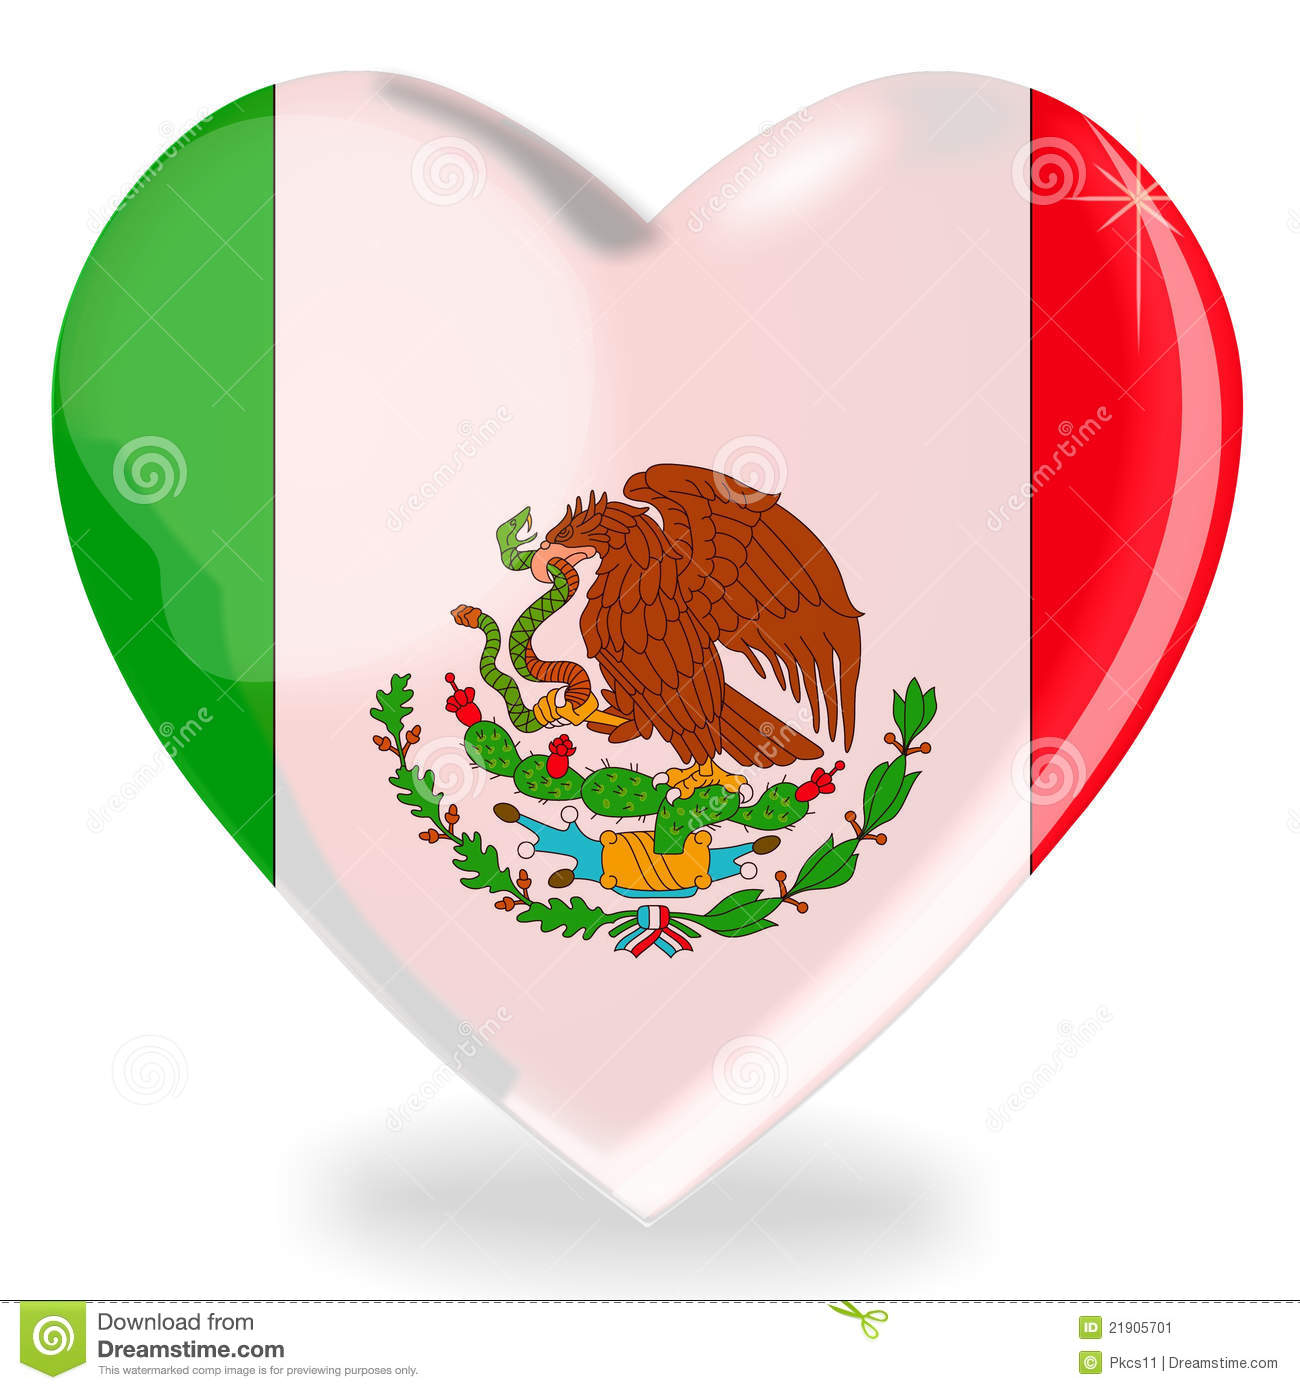 More similar stock images of ` Mexican flag heart shape `